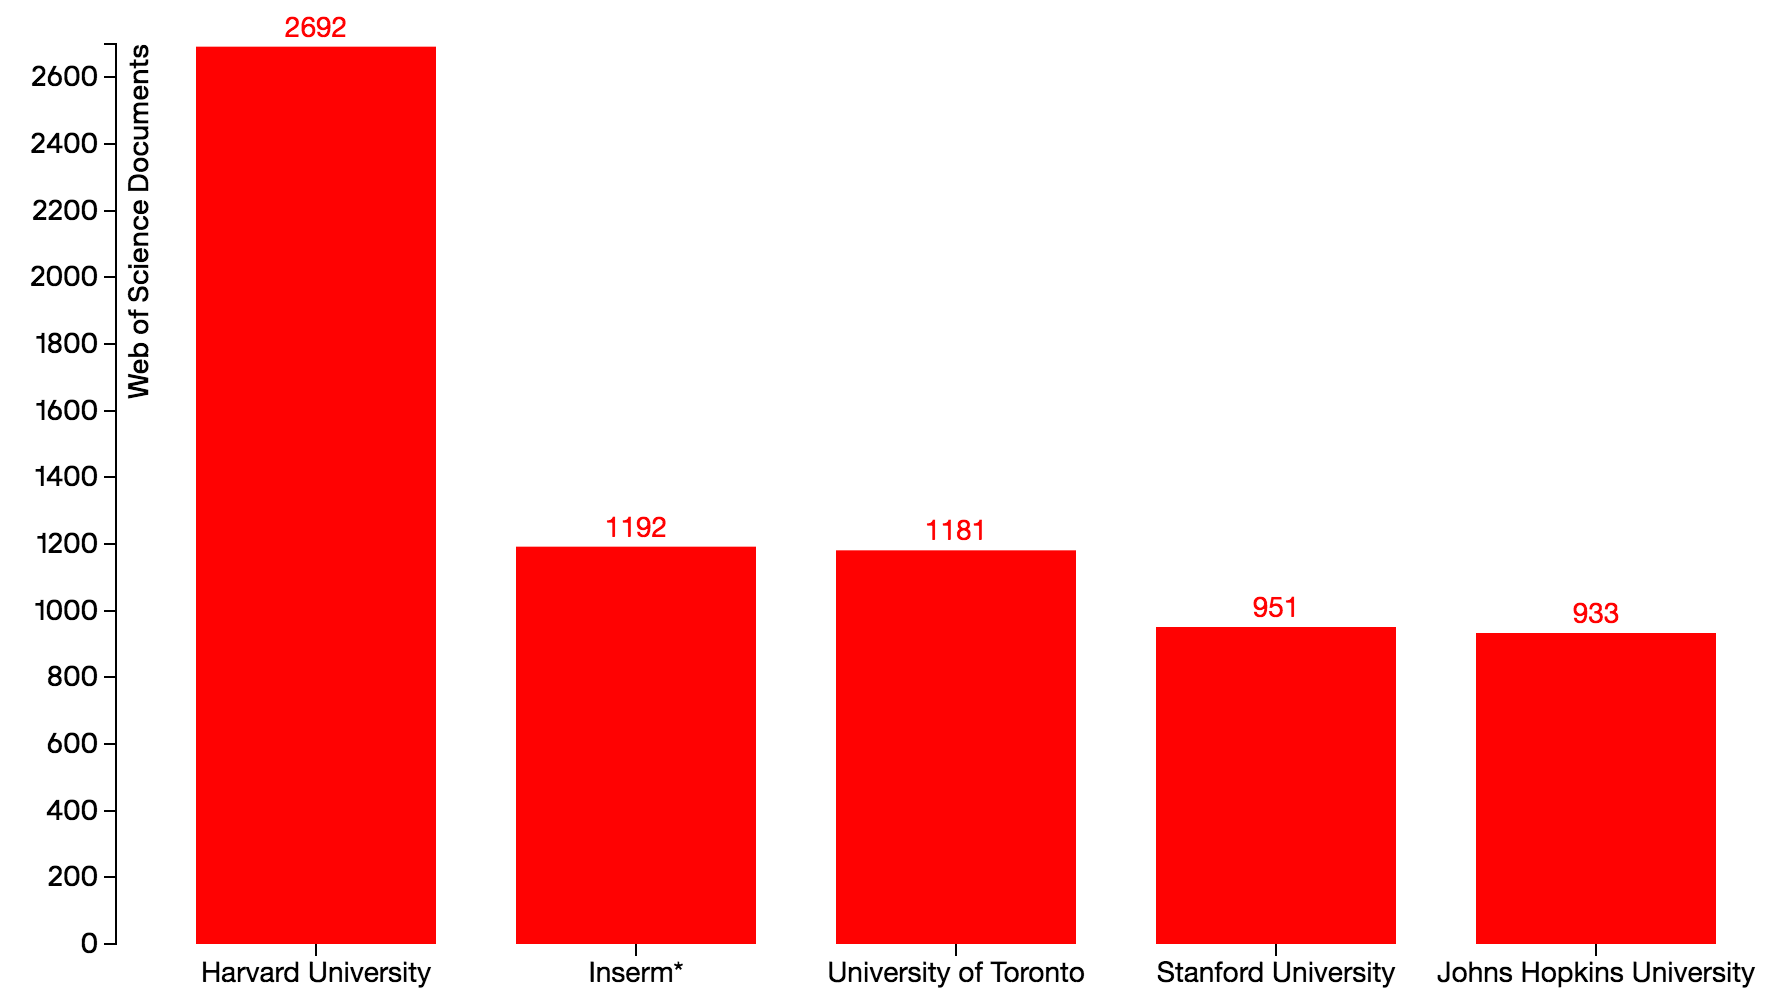 Number of Articles in Top Journals, 2015 World Top 5 Organizations: Harvard, Inserm, U of T, Stanford, Johns Hopkins